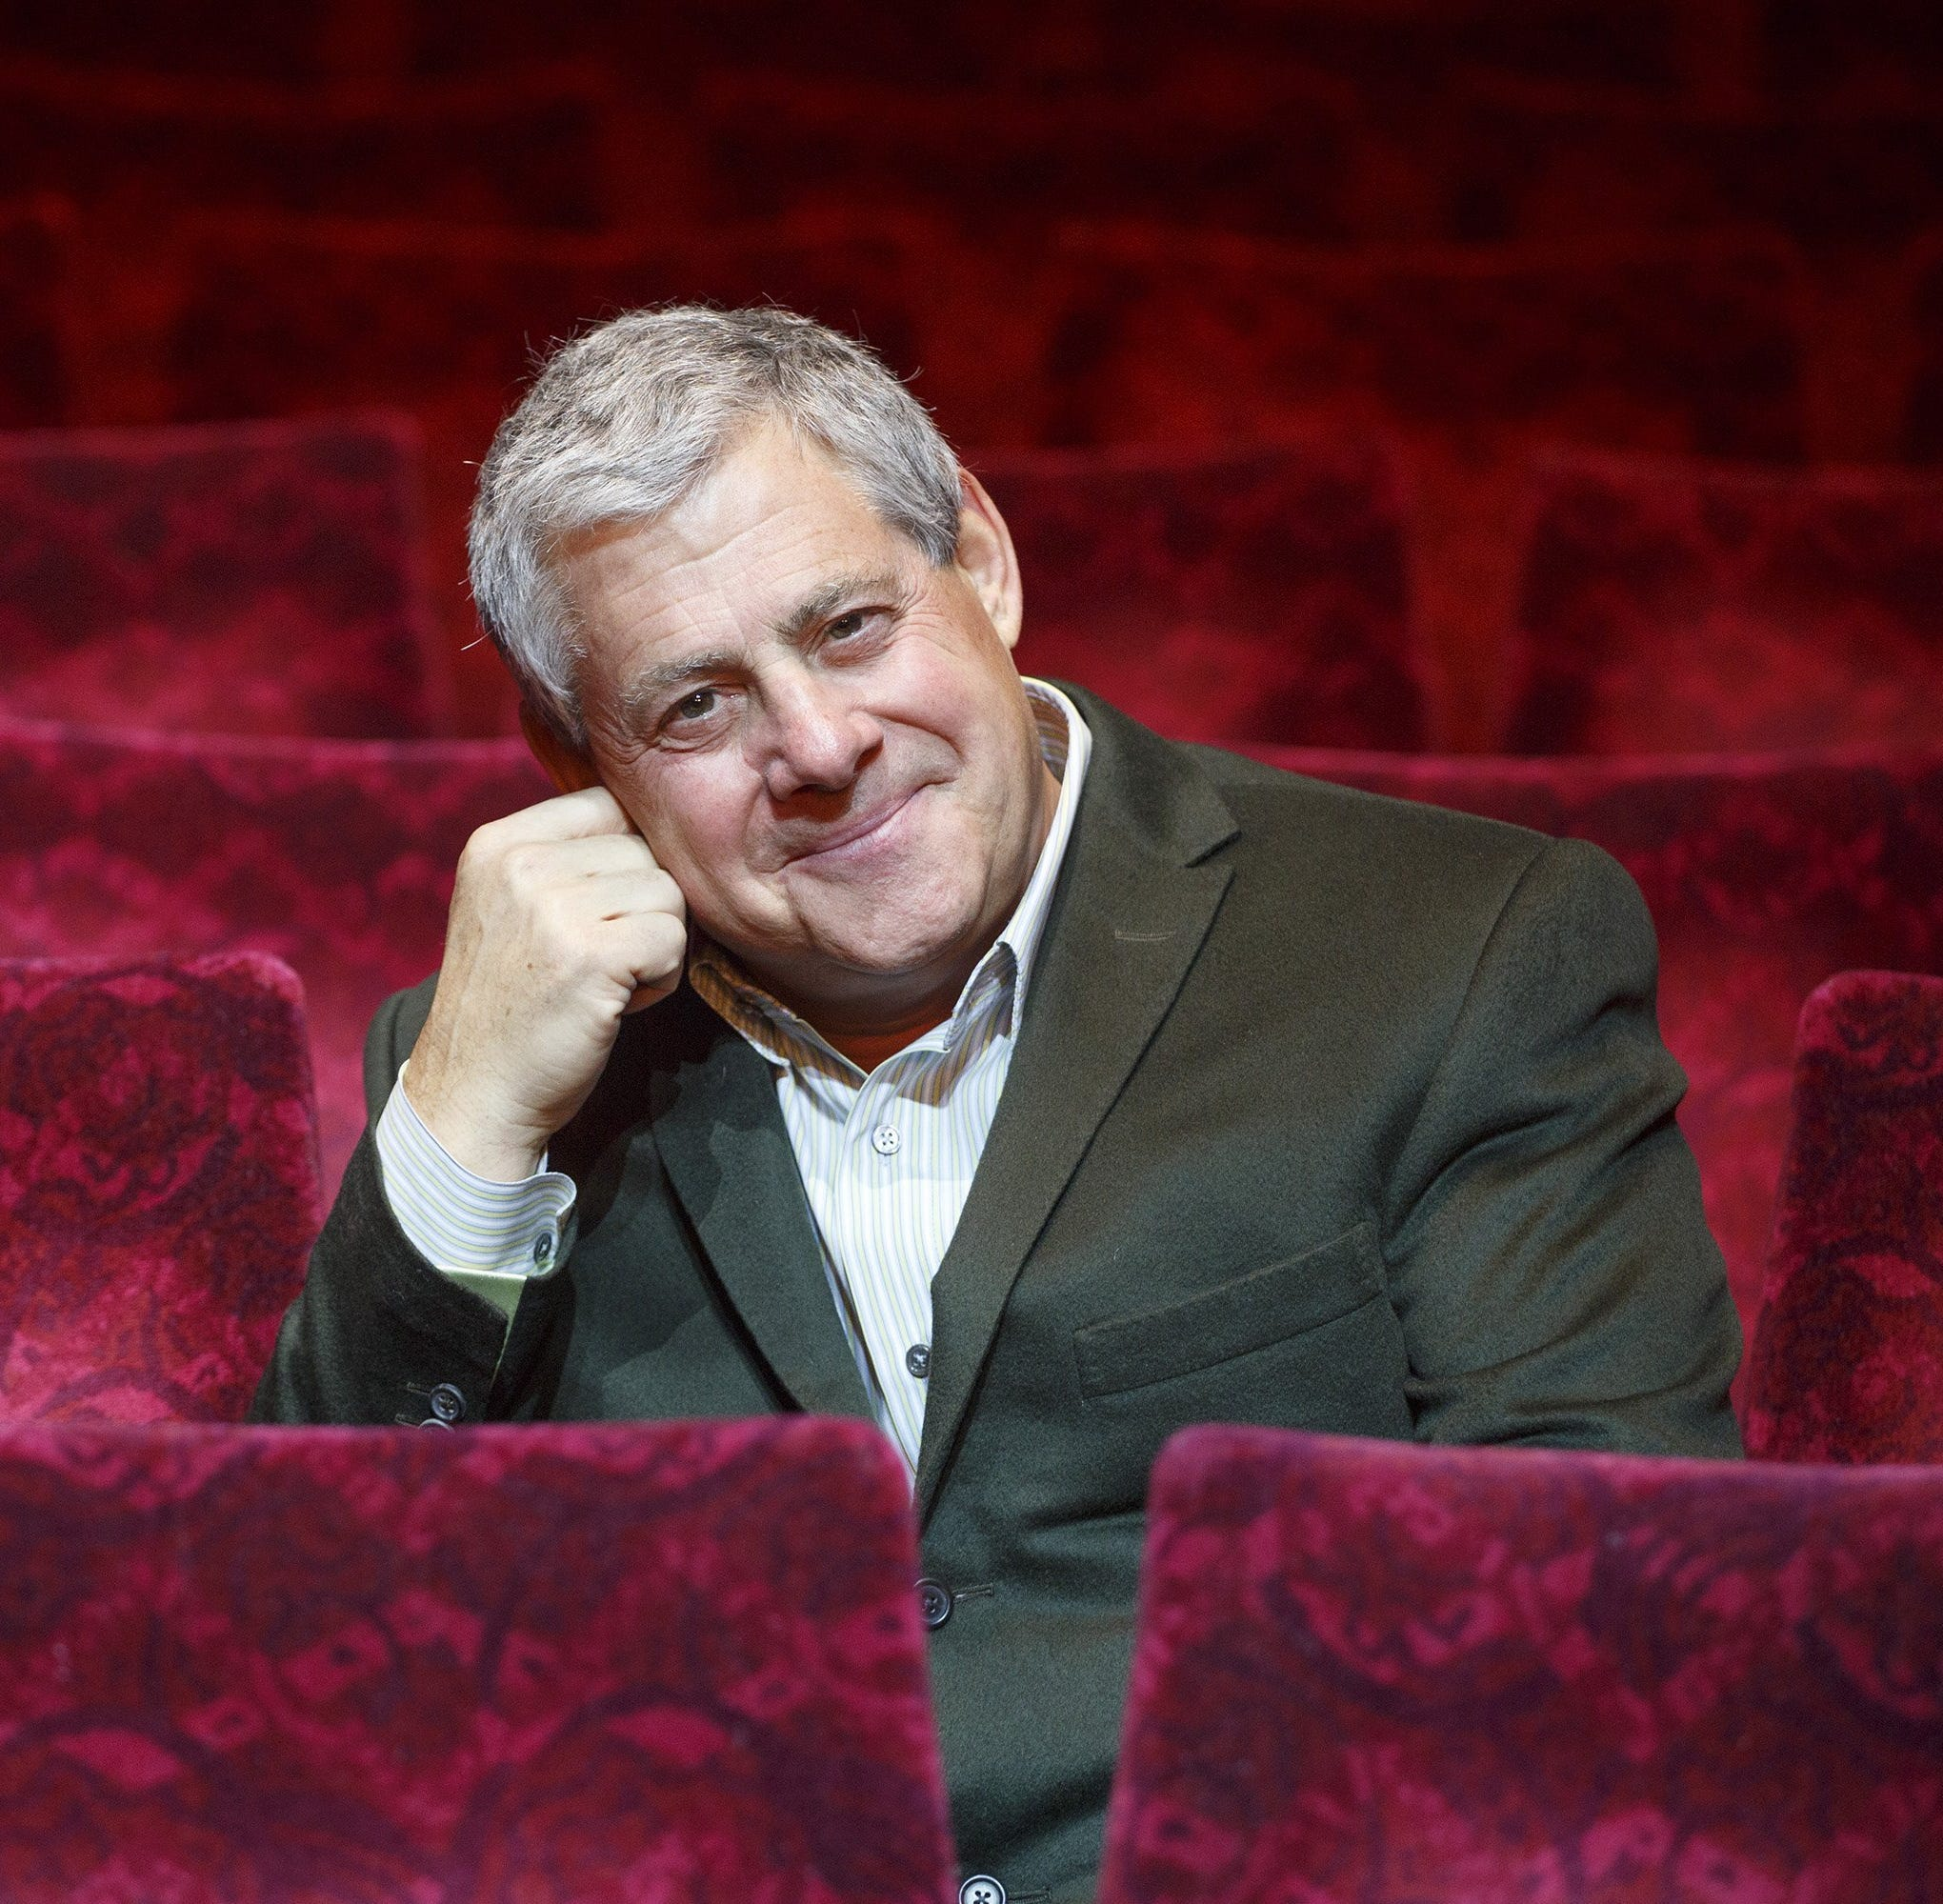 'Les Misérables' in Fort Myers: Cameron Mackintosh on Mann Hall show and his long career